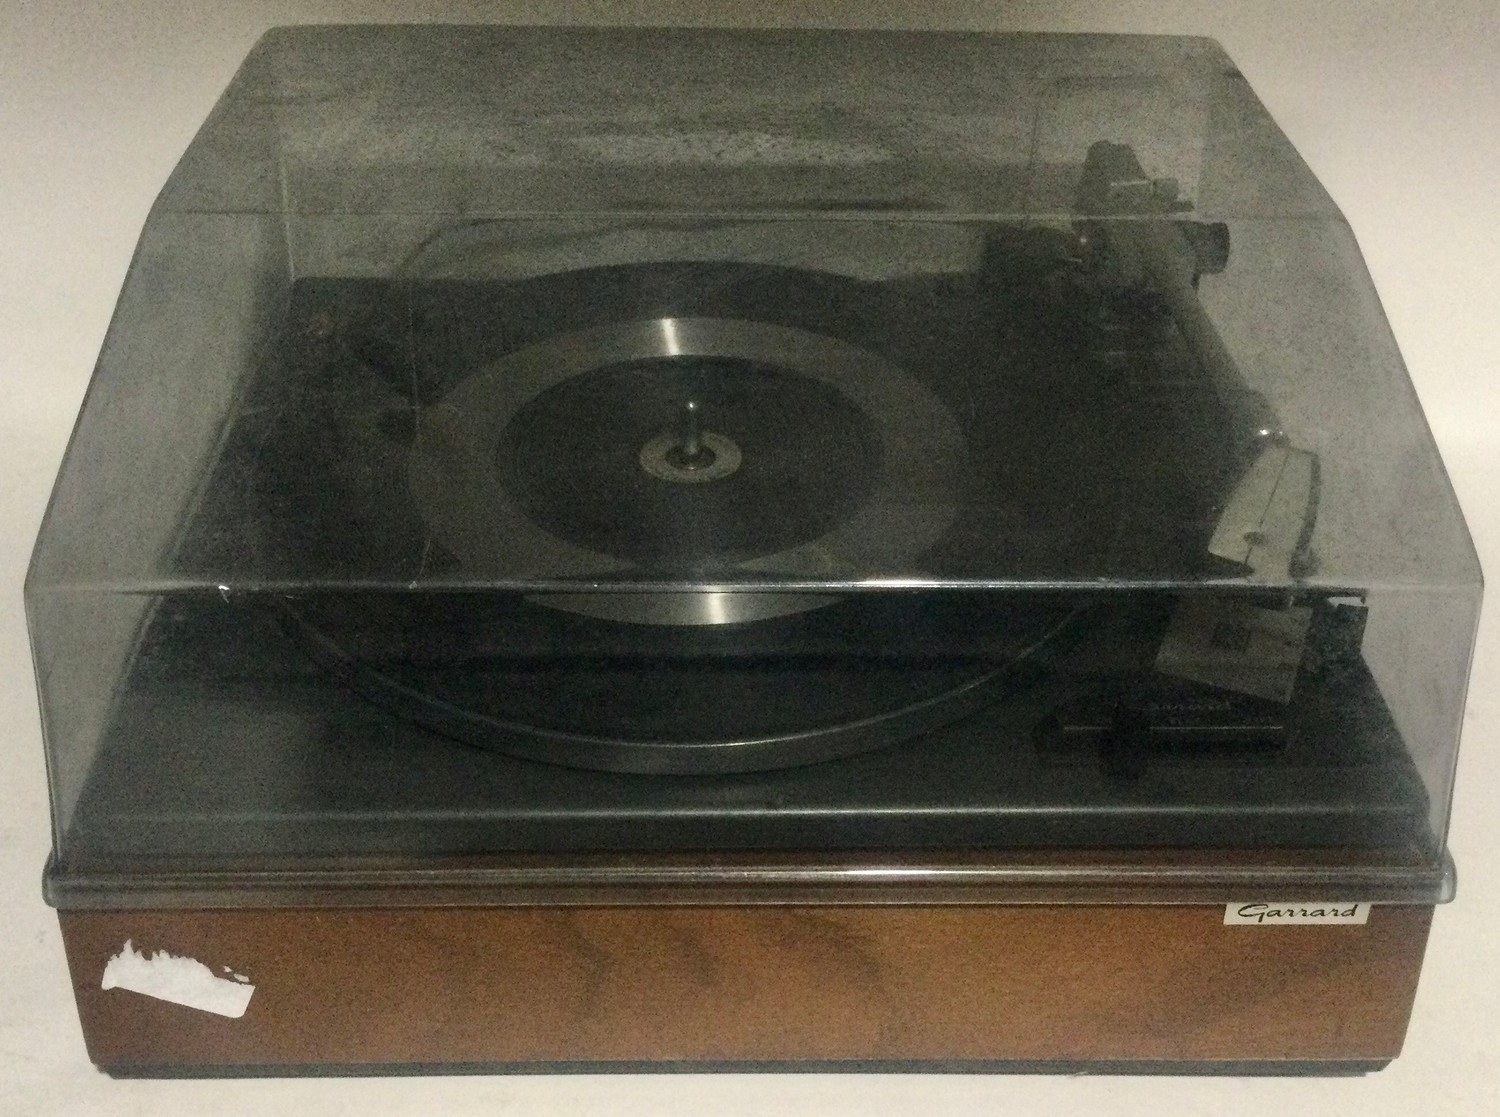 Garrard SP25 mk2 turntable / record player. Comes in wooden plinth with Perspex lid.